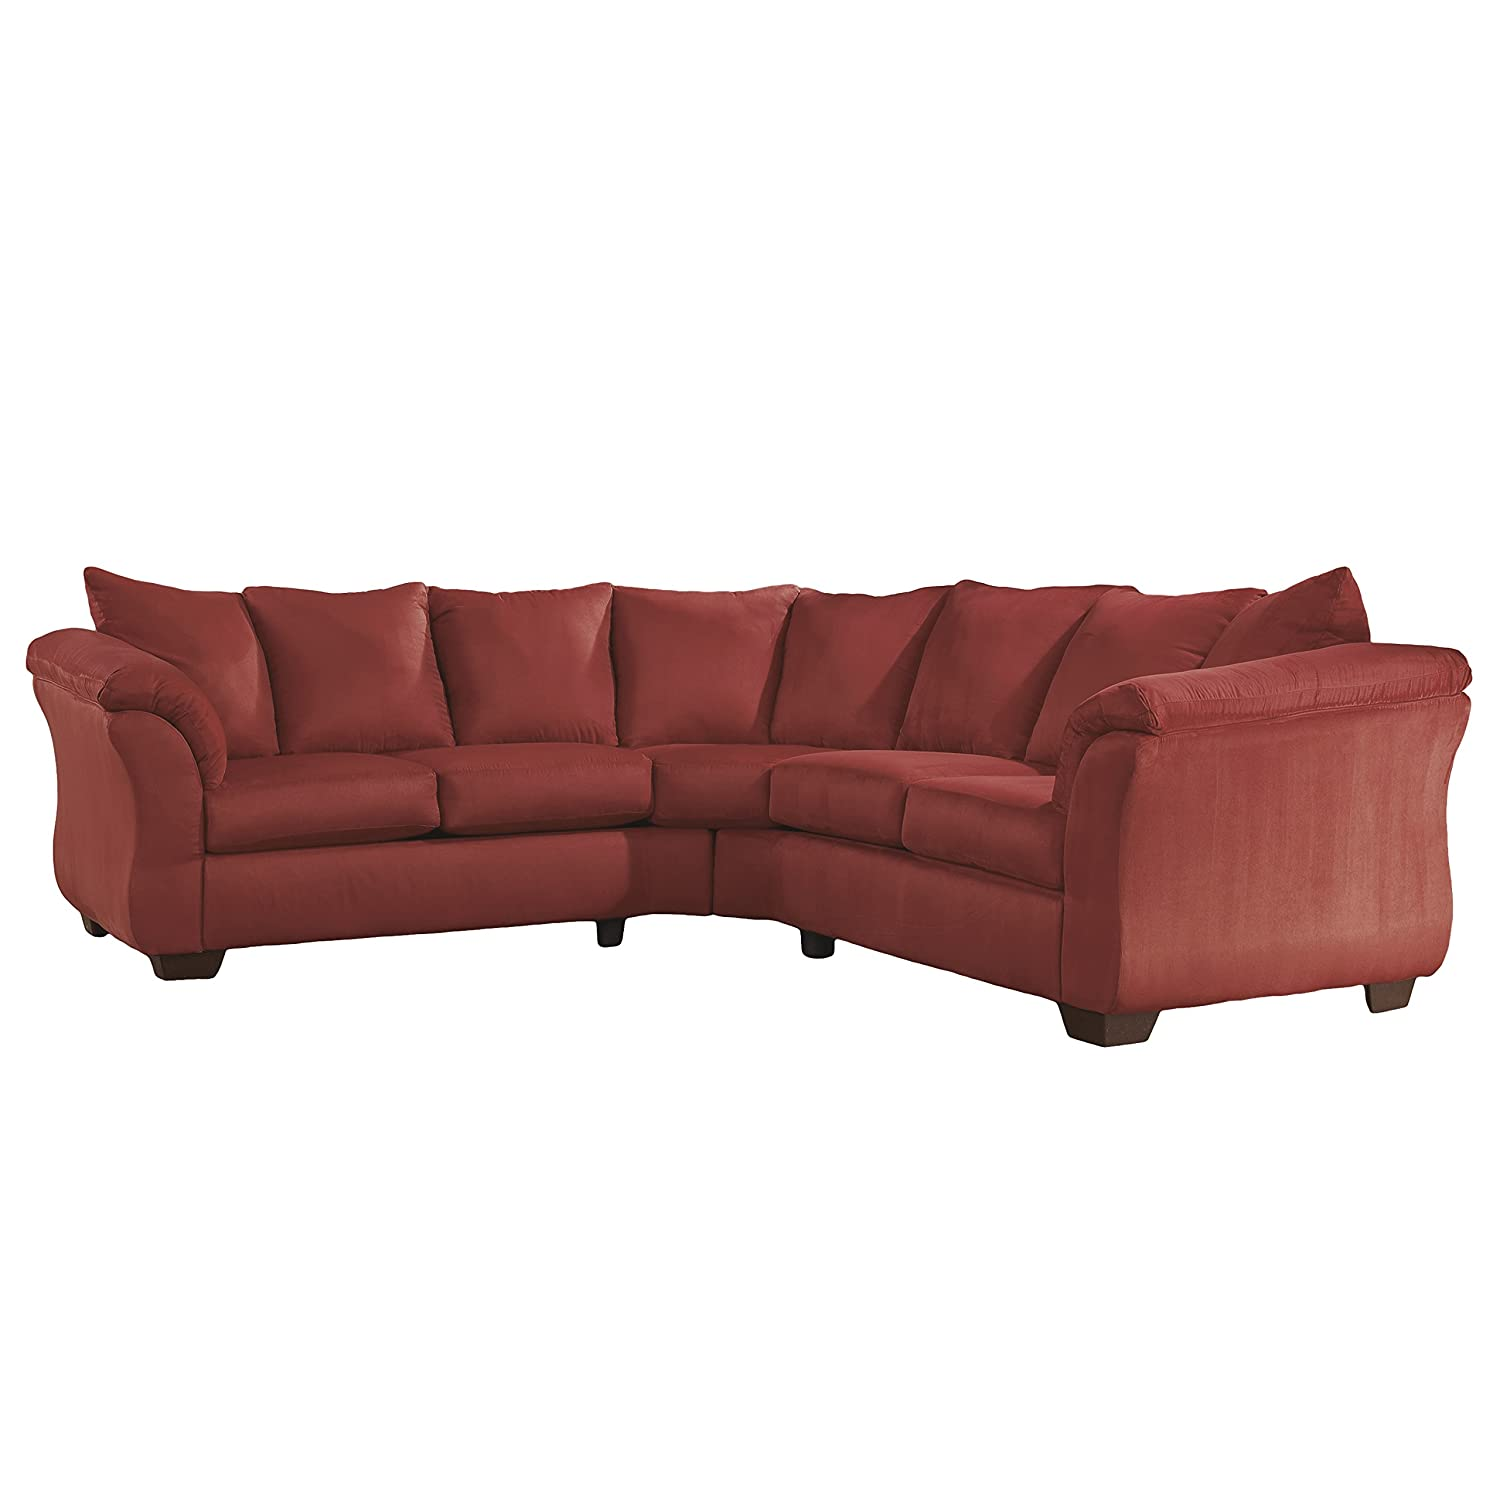 Amazon Signature Design by Ashley Darcy Sectional in Cafe